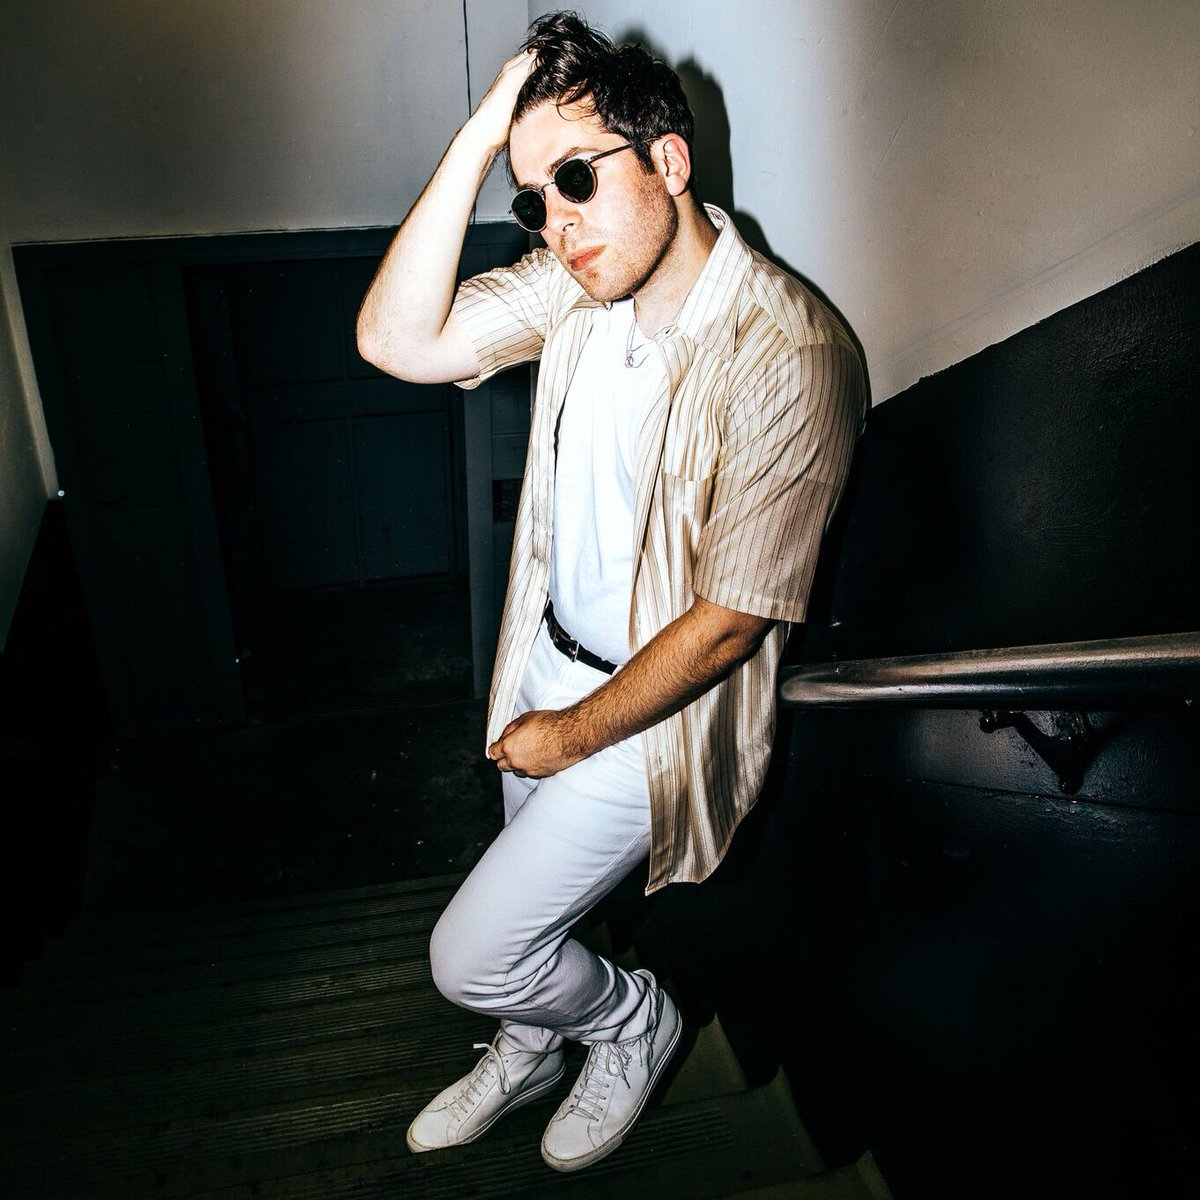 Hoodie allen on twitter columbus oh tonight hypetour 7 pm doors hoodie allen on twitter columbus oh tonight hypetour 7 pm doors 7 pm 8pm meet me at merch 8pm myles 840 pm luke 940 pm howdy mf allen tix available at m4hsunfo